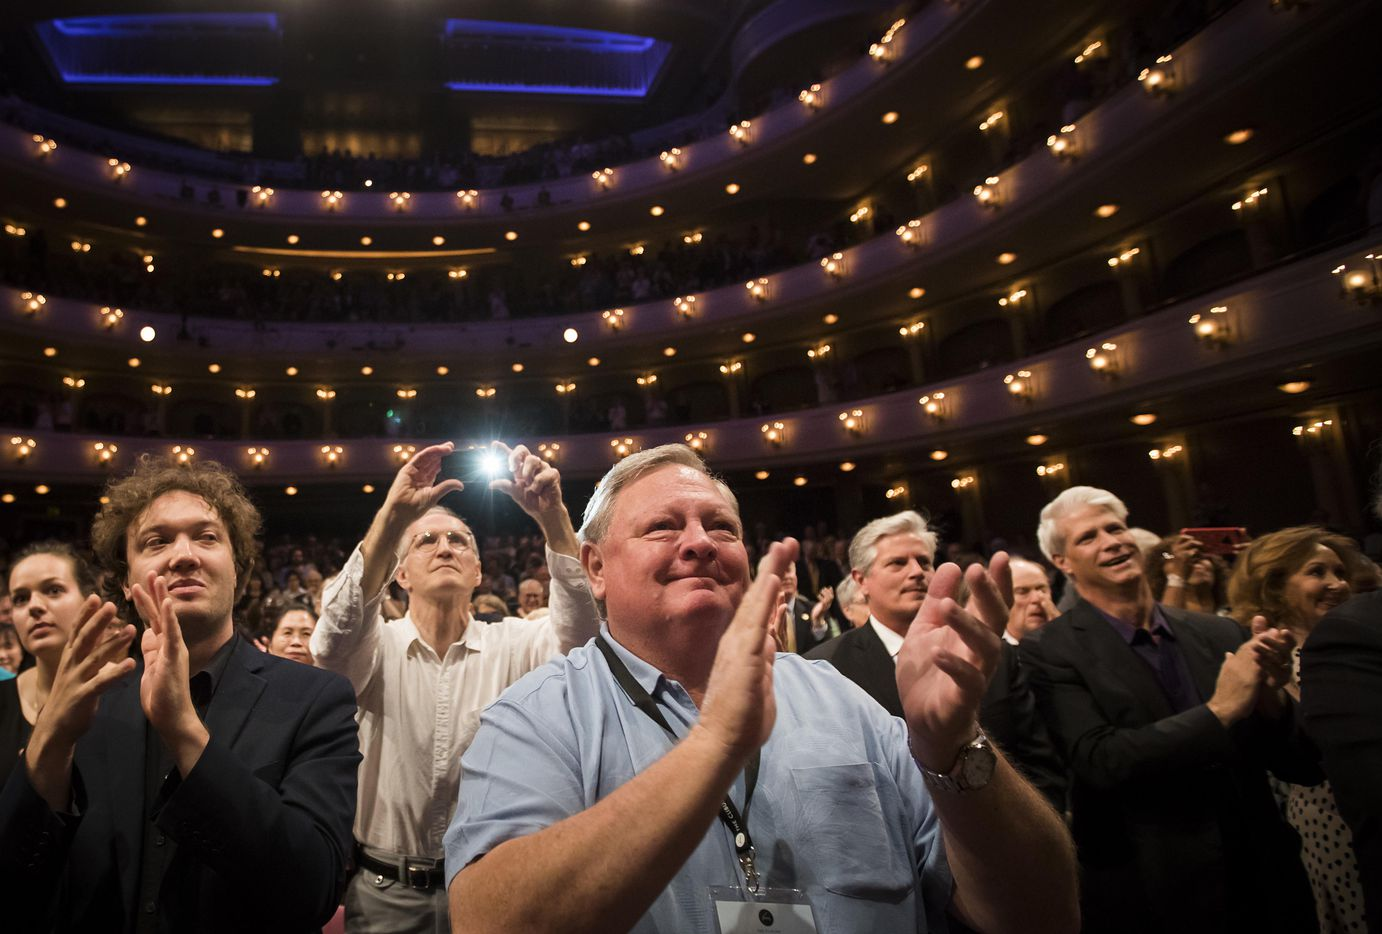 Host Tom Kees applauds the winners with during the Van Cliburn International Piano Competition awards ceremony at the Bass Performance Hall in Fort Worth on Saturday, June 10, 2017. (Smiley N. Pool/The Dallas Morning News)